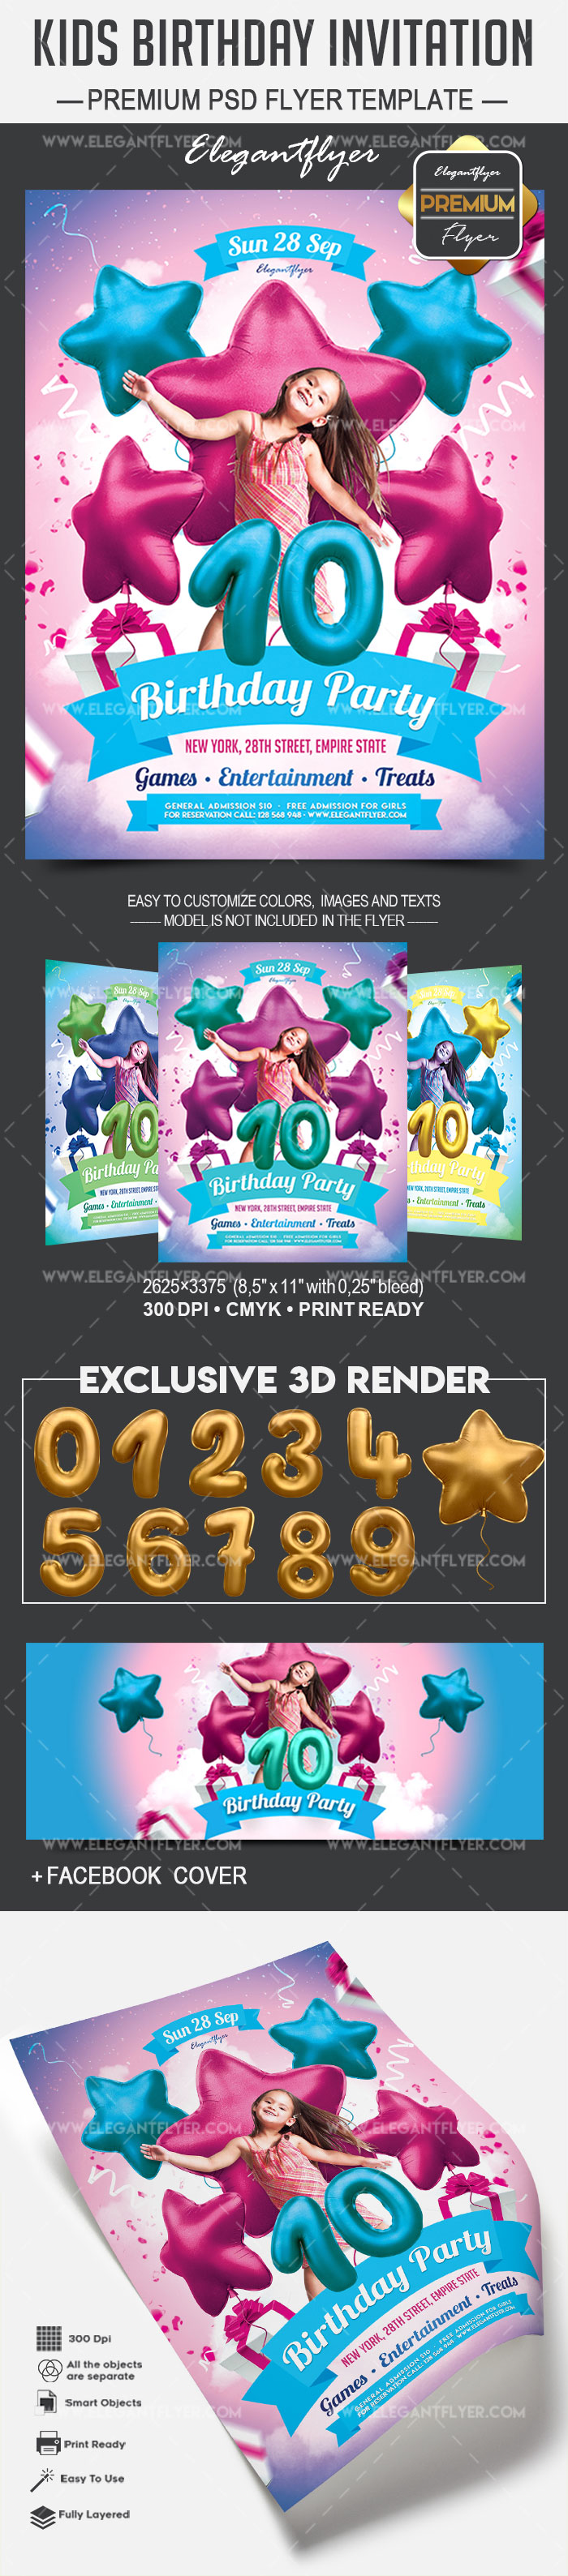 Kids Birthday Invitation – Premium PSD Template